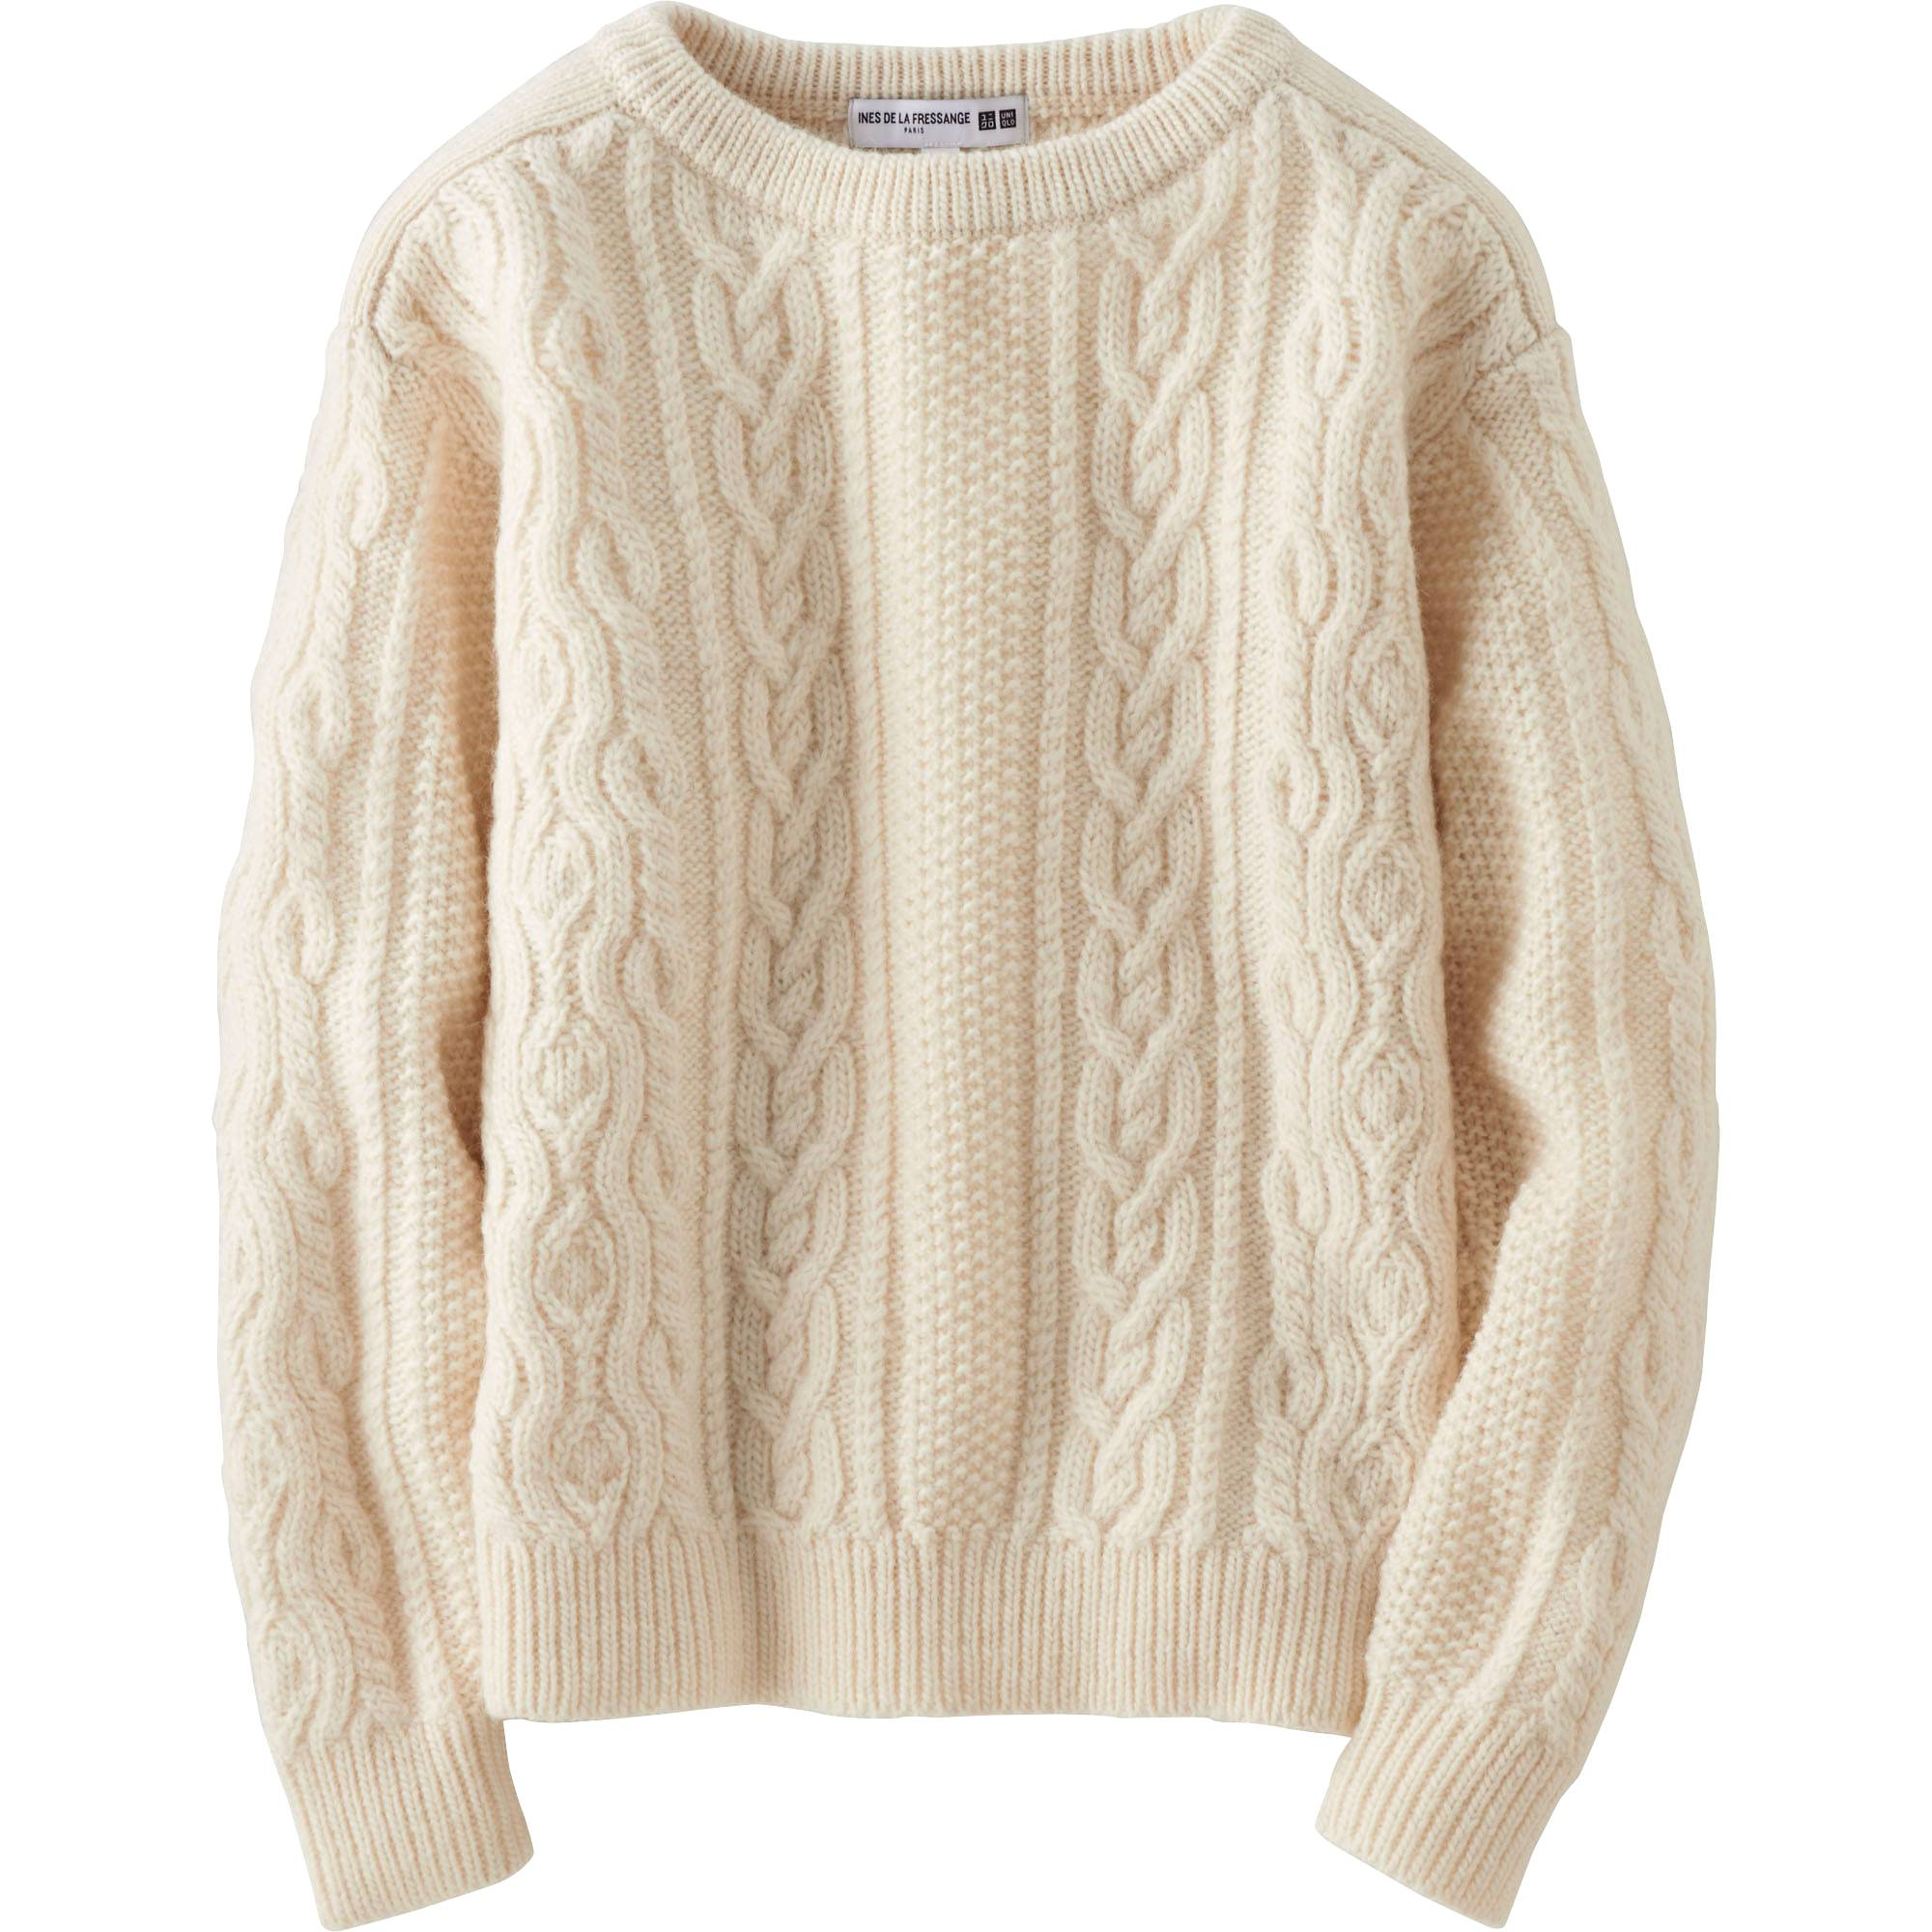 Women idlf cable boat neck sweater uniqlo us women idlf cable boat neck sweater brown small bankloansurffo Images